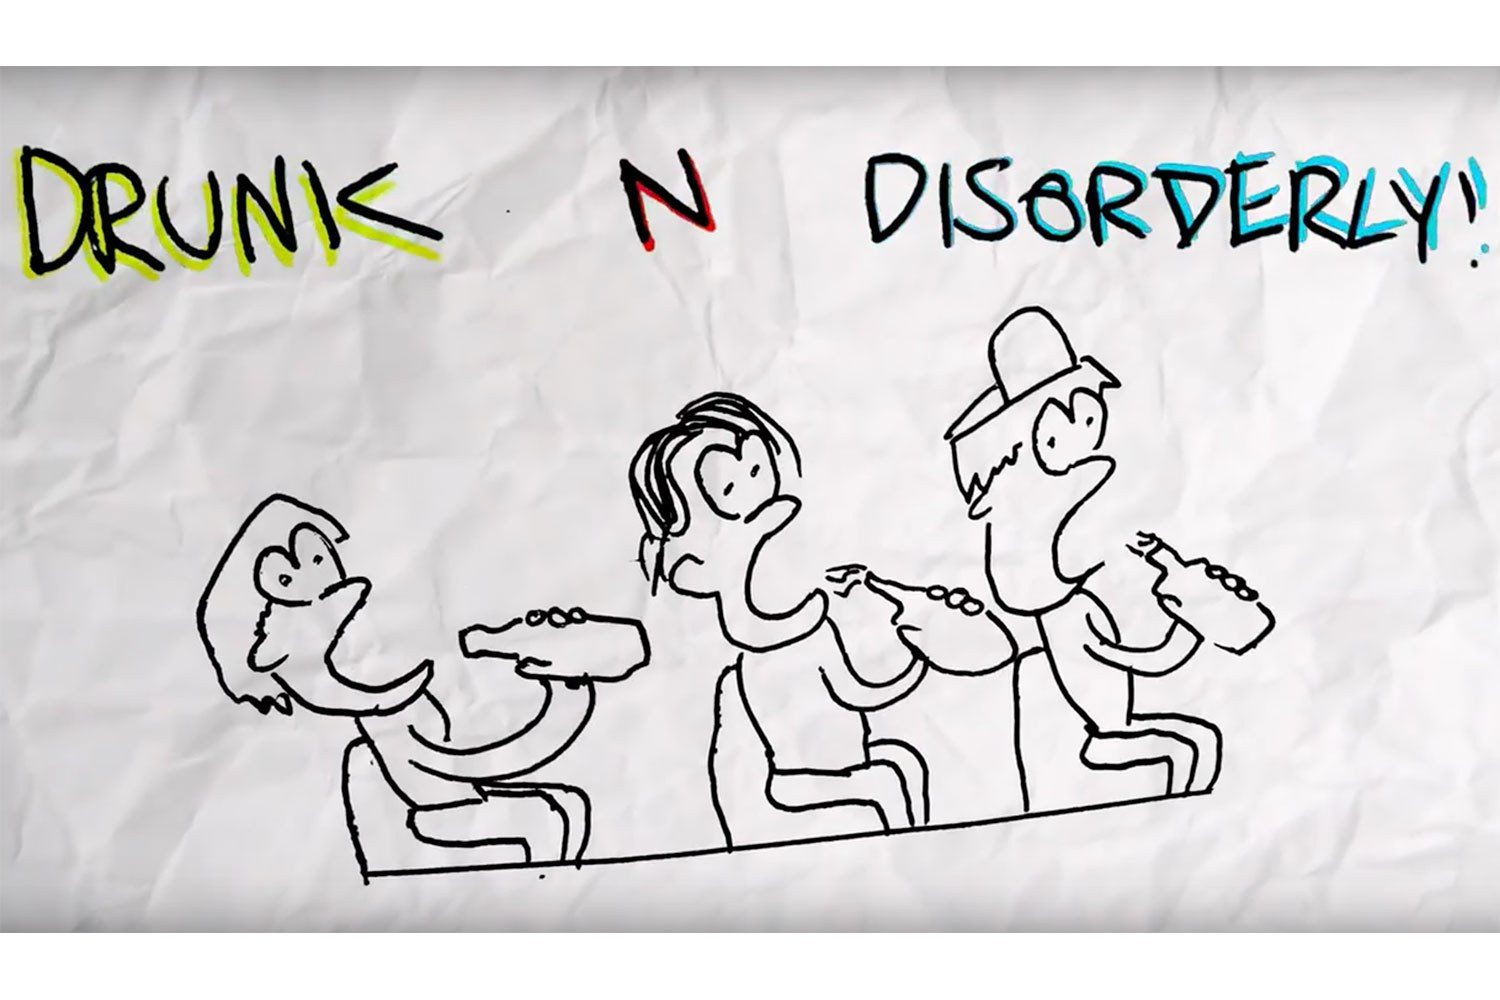 The Chats have released a new animated video for 'Drunk N Disorderly'